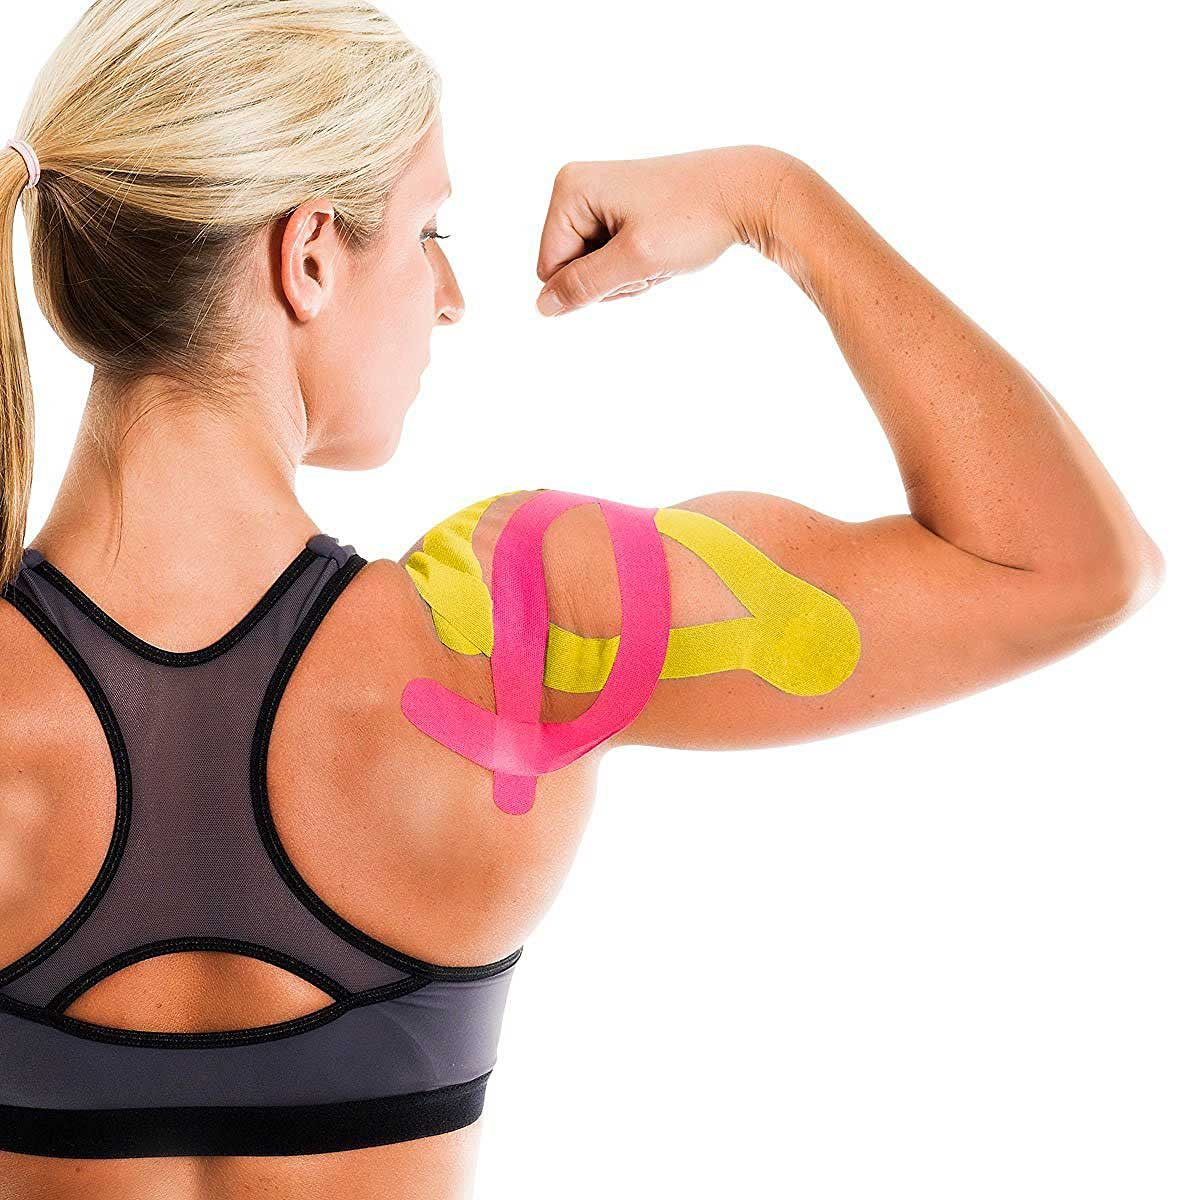 Some Quick Facts About The Kinesiology Tape